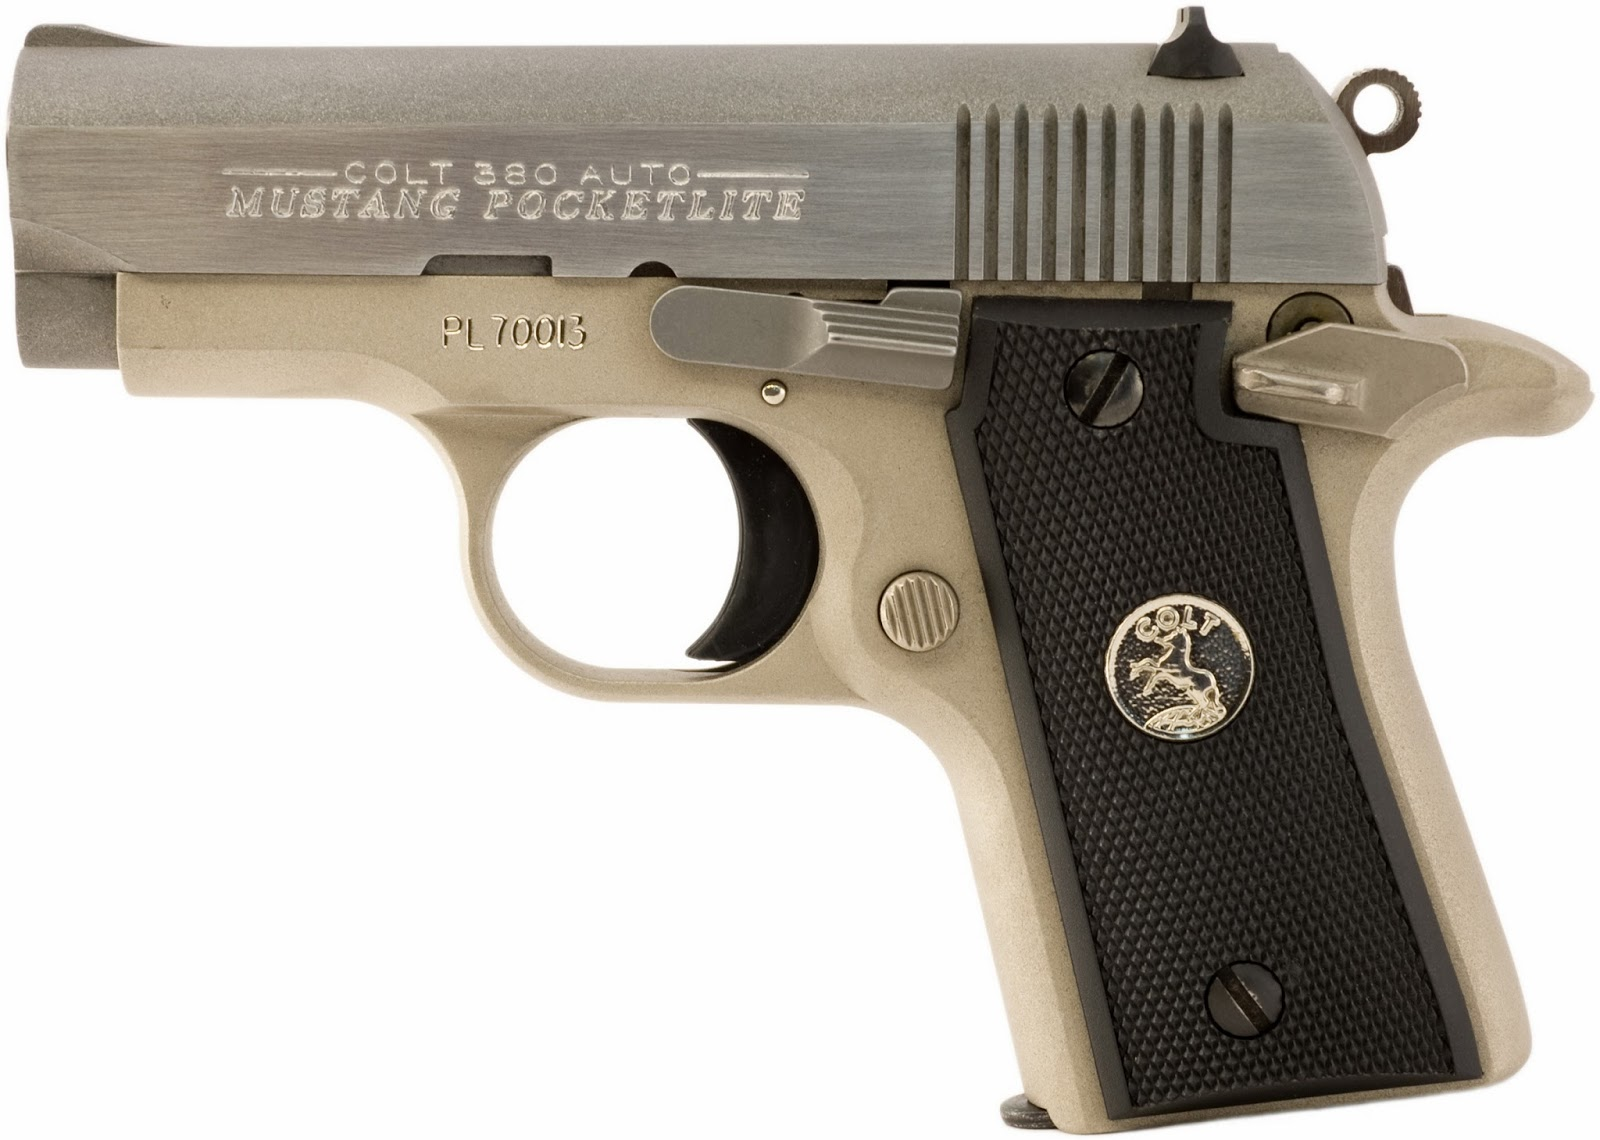 dating a colt mustang The polymer-framed colt mustang xsp combines the classic and reliable manual-of-arms of the 1911 with the portability of modern pocket pistols.